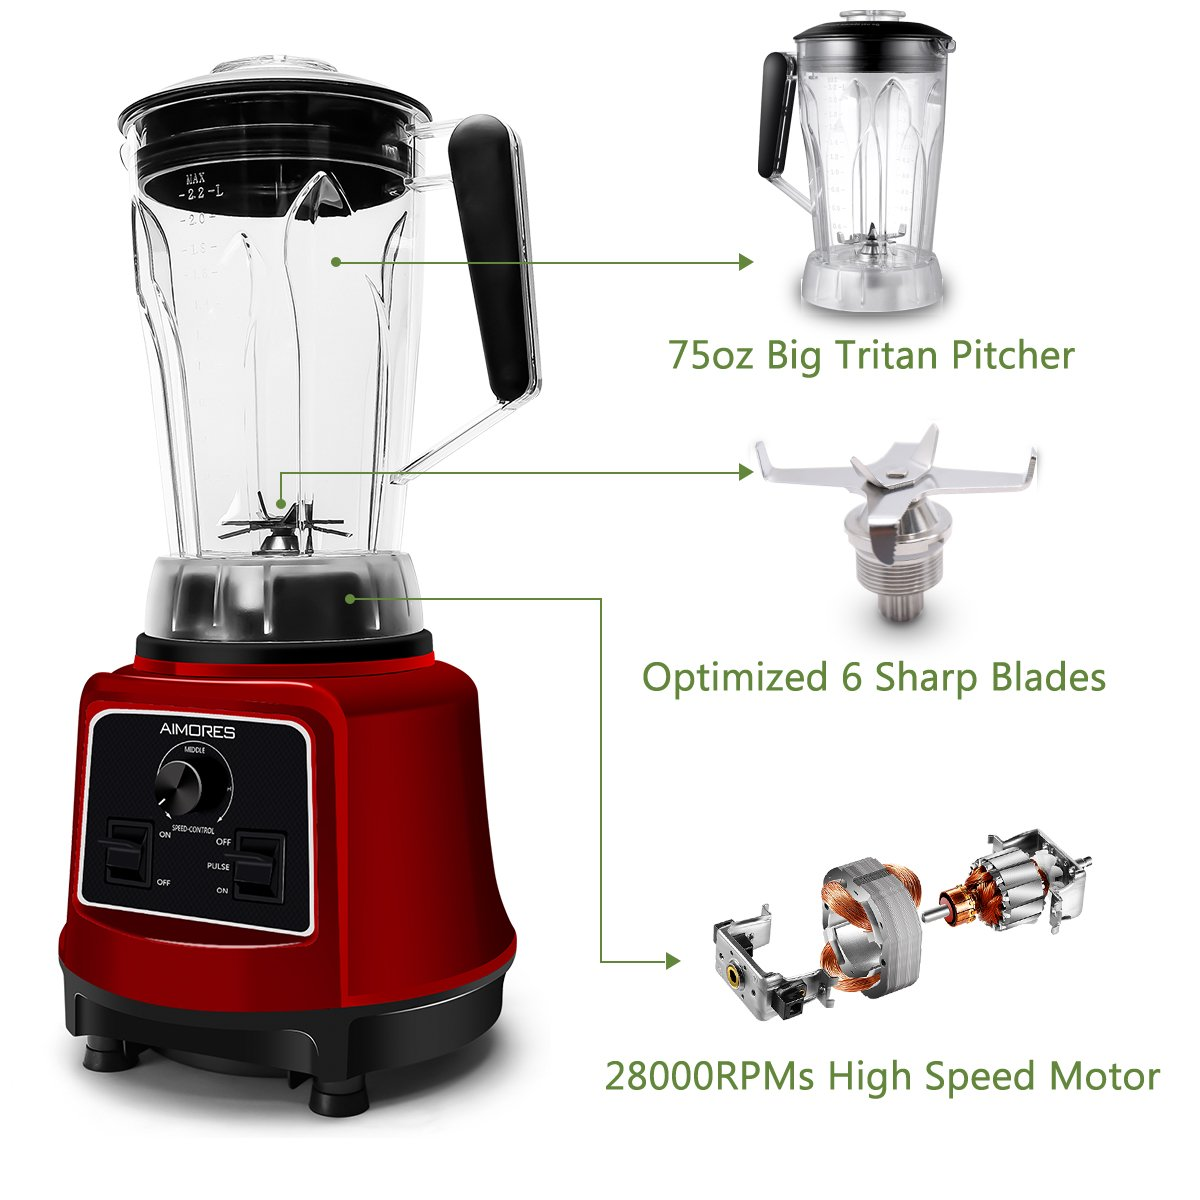 Commercial Blender Aimores for Smoothie   750z. High Speed Juicer, Ice Cream Maker   Optimized 6 Sharp Blades   Auto Clean & Simple Control   w/ Recipe & Tamper   ETL & FDA Certified (Red) by ISUN (Image #3)